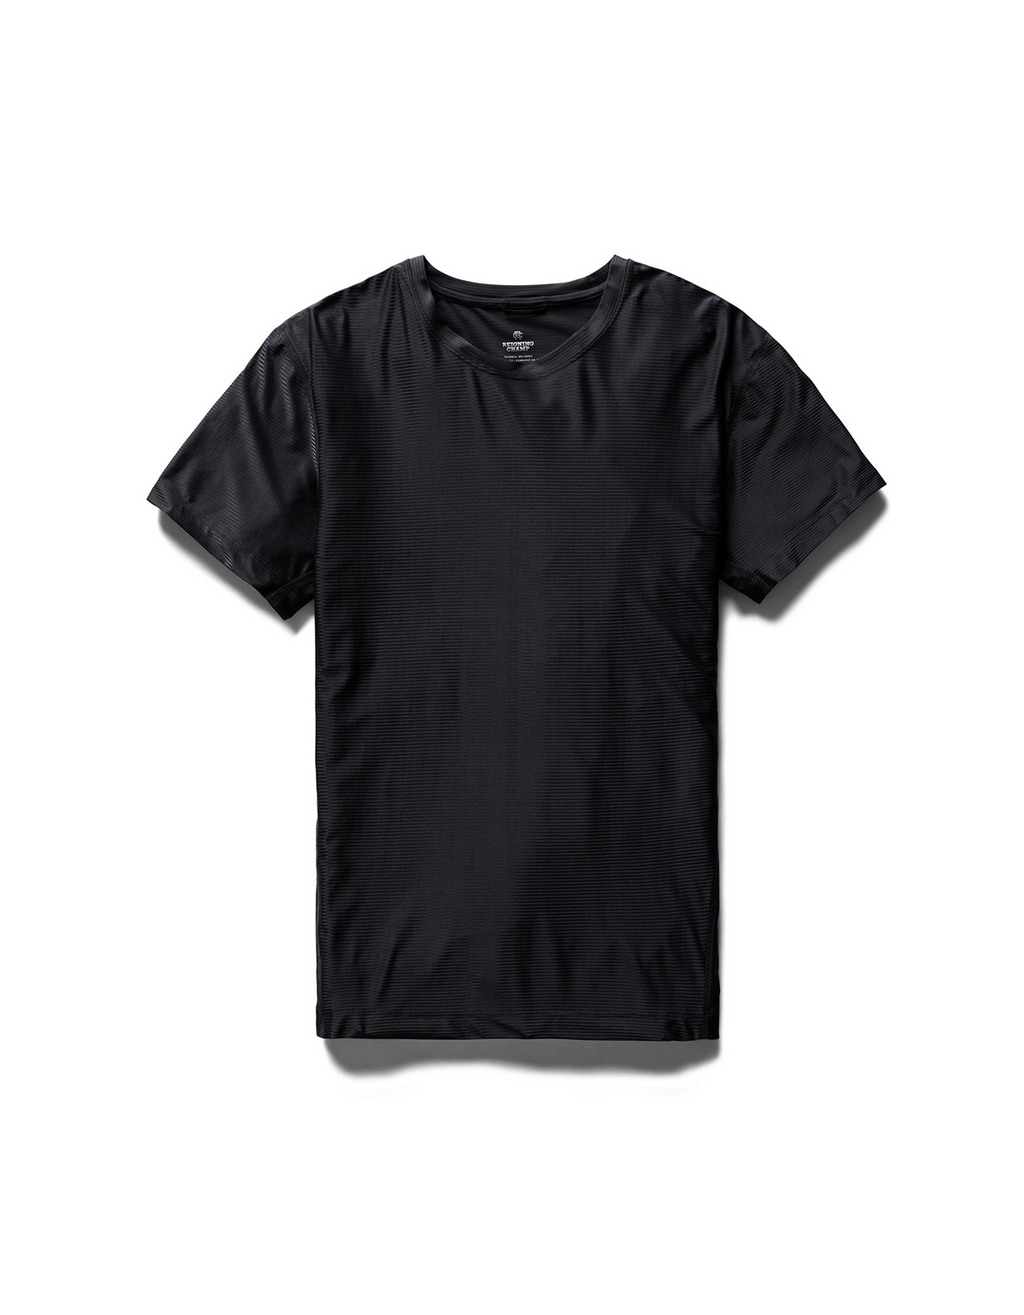 Schoeller E1 T-Shirt / Black